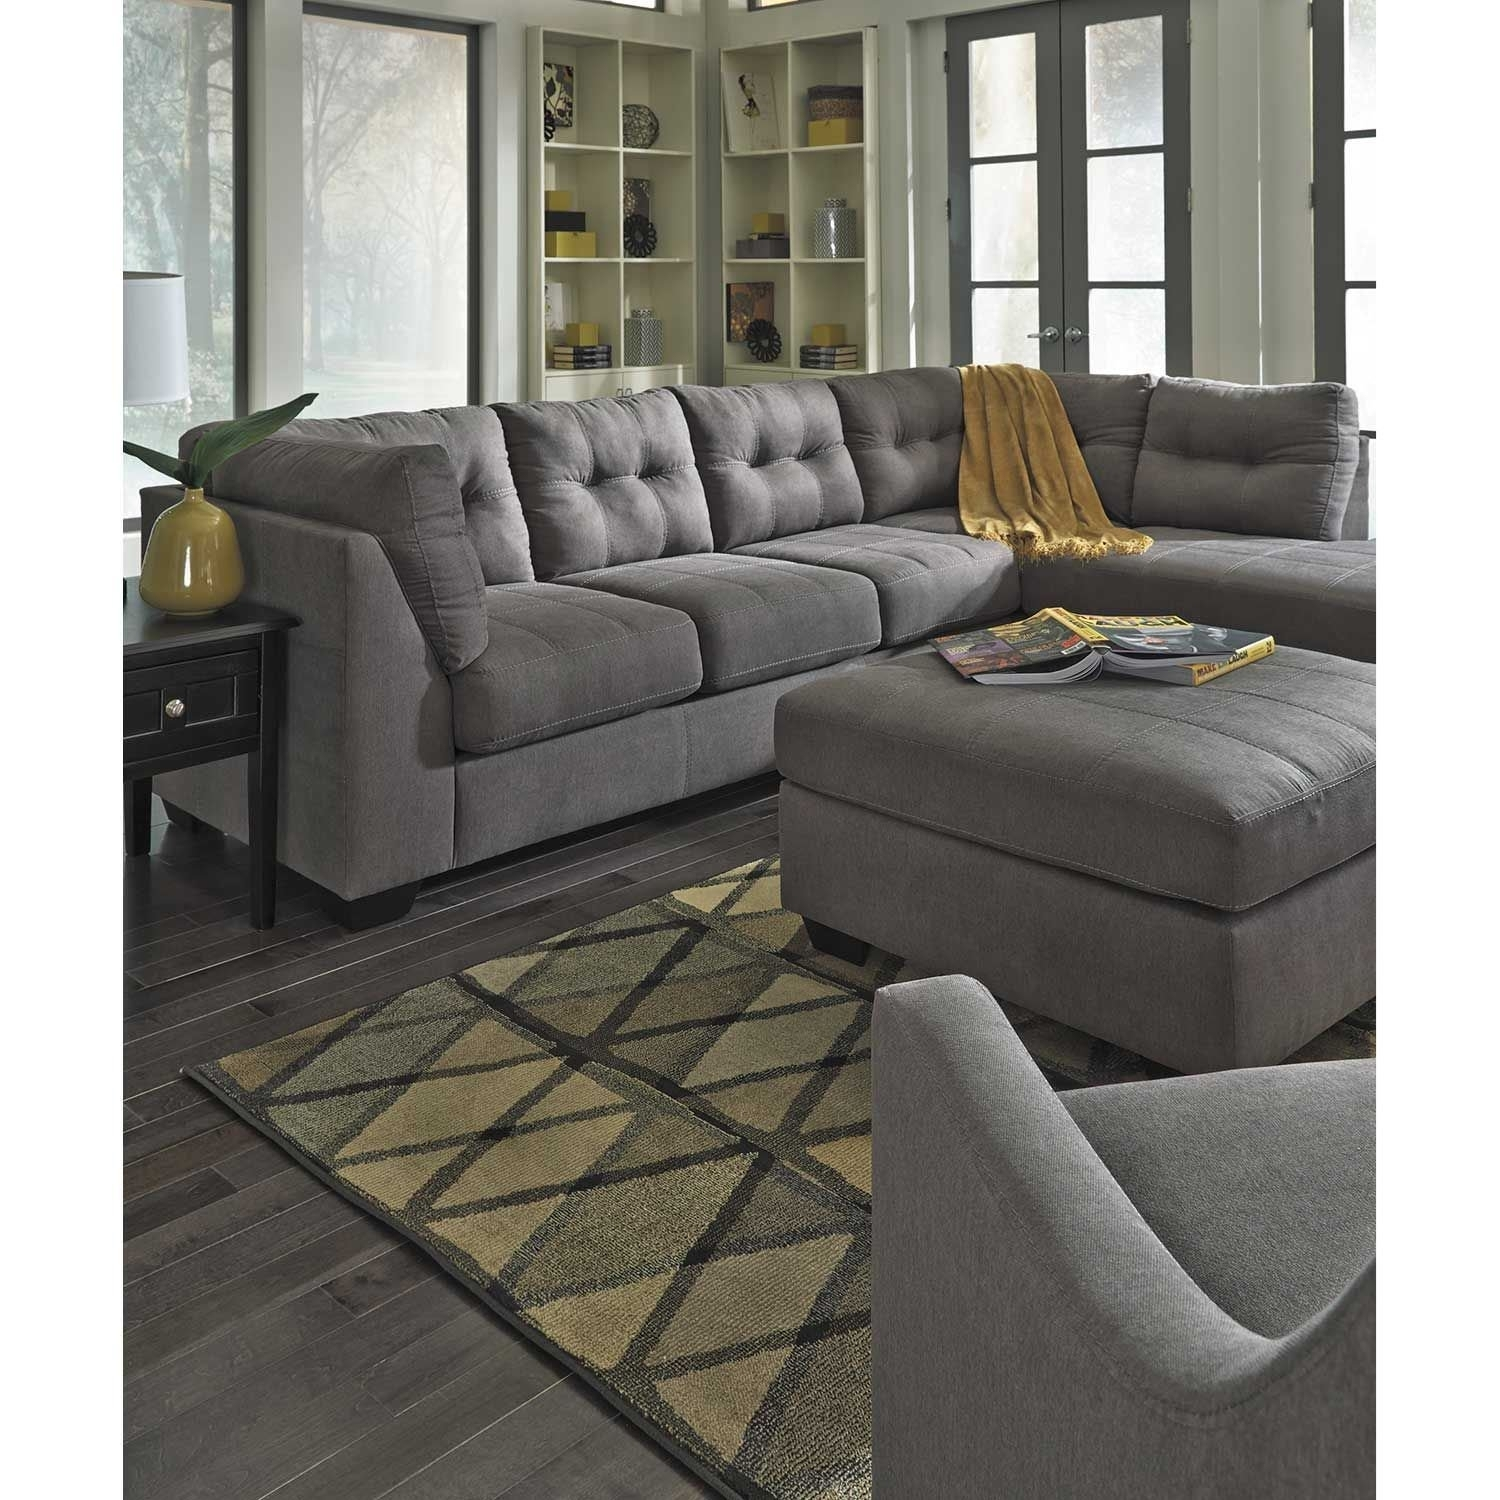 Maier Charcoal 2 Piece Sectional With Laf Chaise | 4520016/67 Inside Arrowmask 2 Piece Sectionals With Raf Chaise (Image 15 of 25)